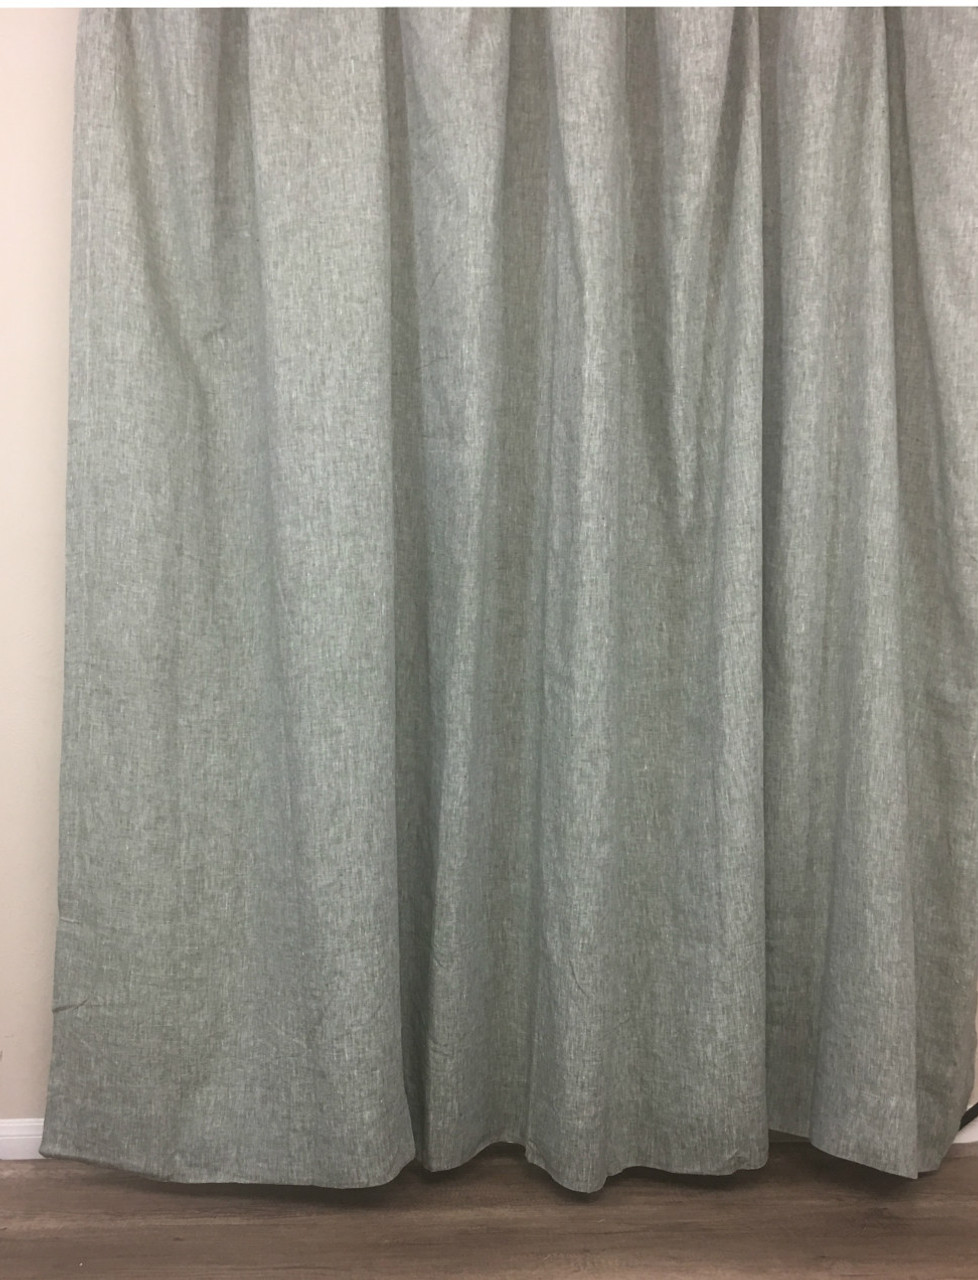 Chambray Olive Green Linen Shower Curtain